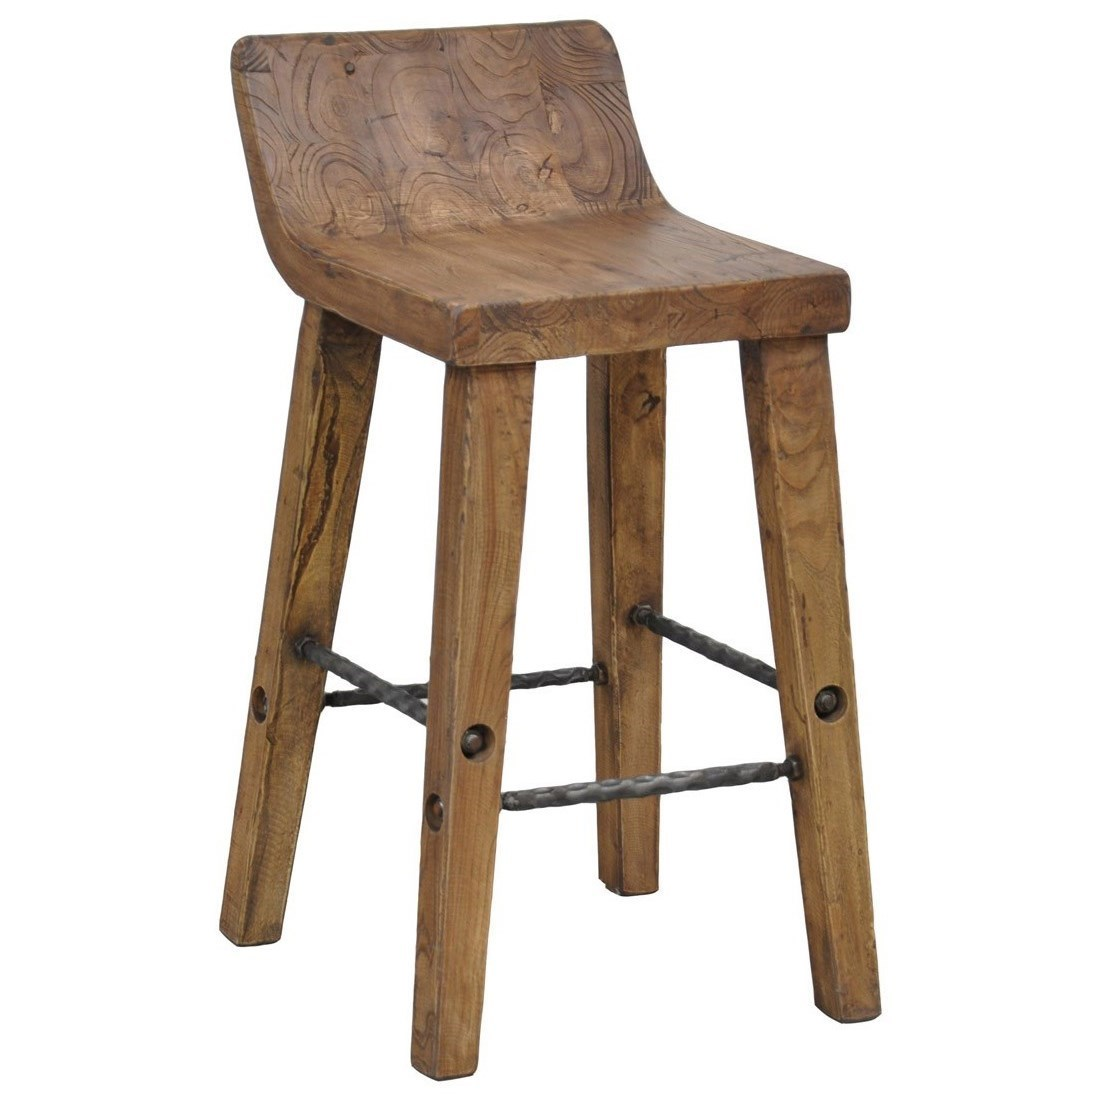 Arturo Low Back Counter Stool by Classic Home at Alison Craig Home Furnishings